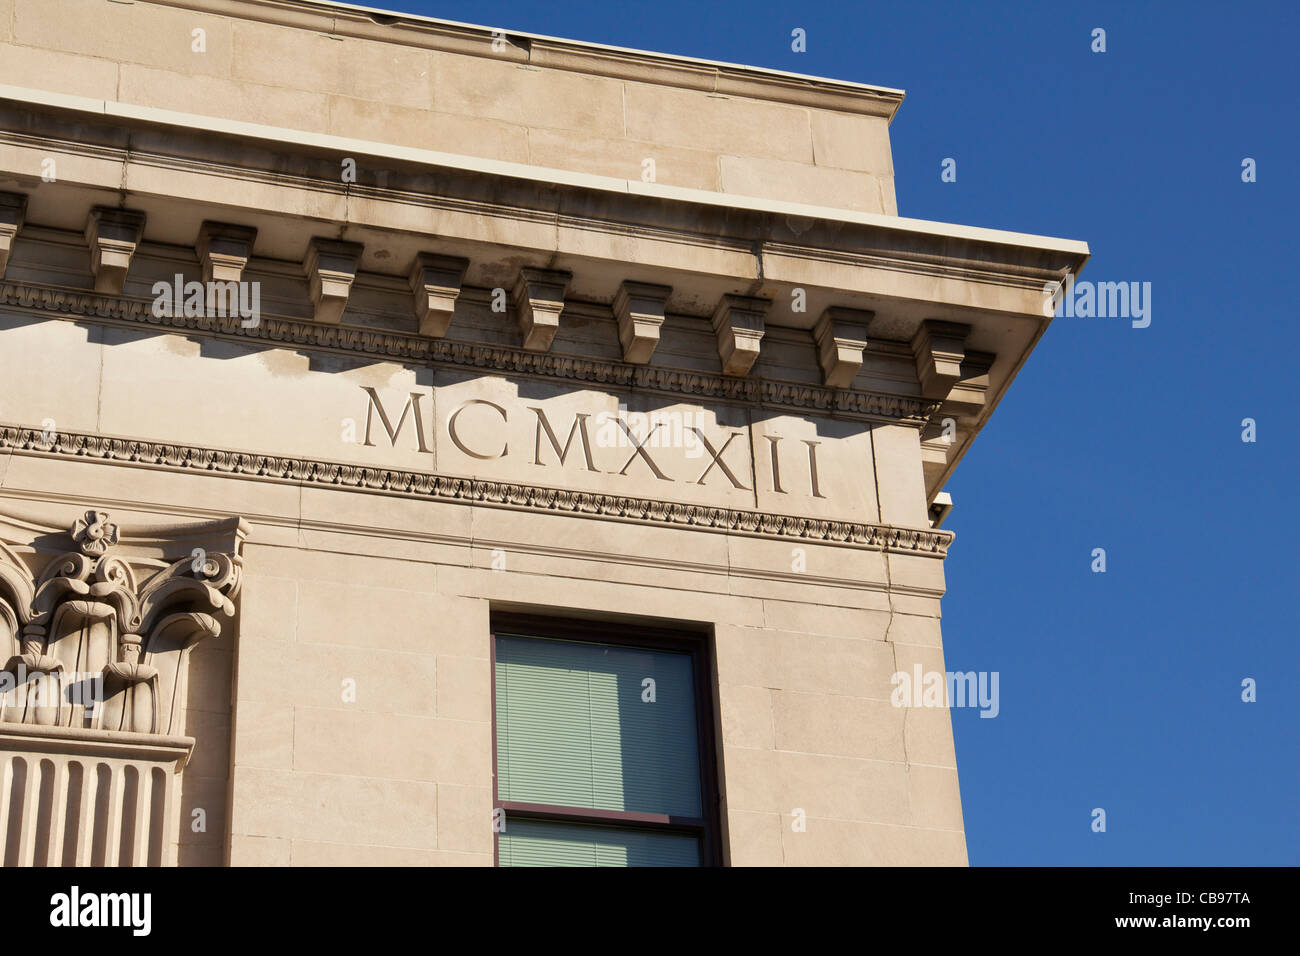 Building constructed in 1922 with Roman Numerals MCMXXII set in stone. - Stock Image